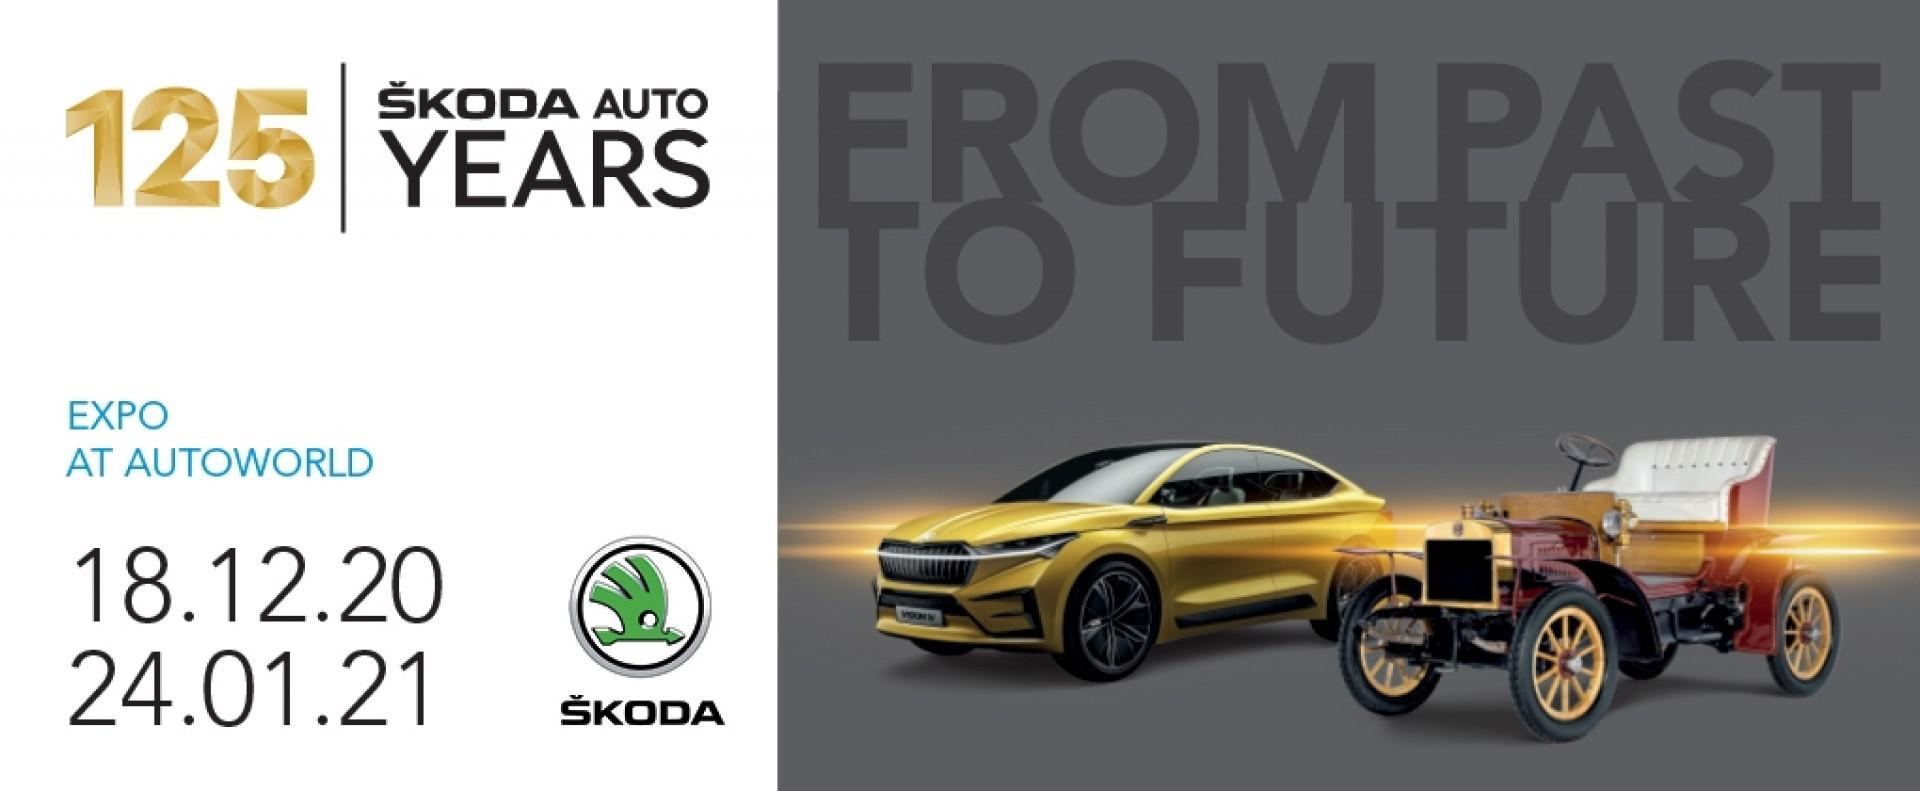 Autoworld Museum Brussels: ŠKODA – 125 YEARS  From past to future